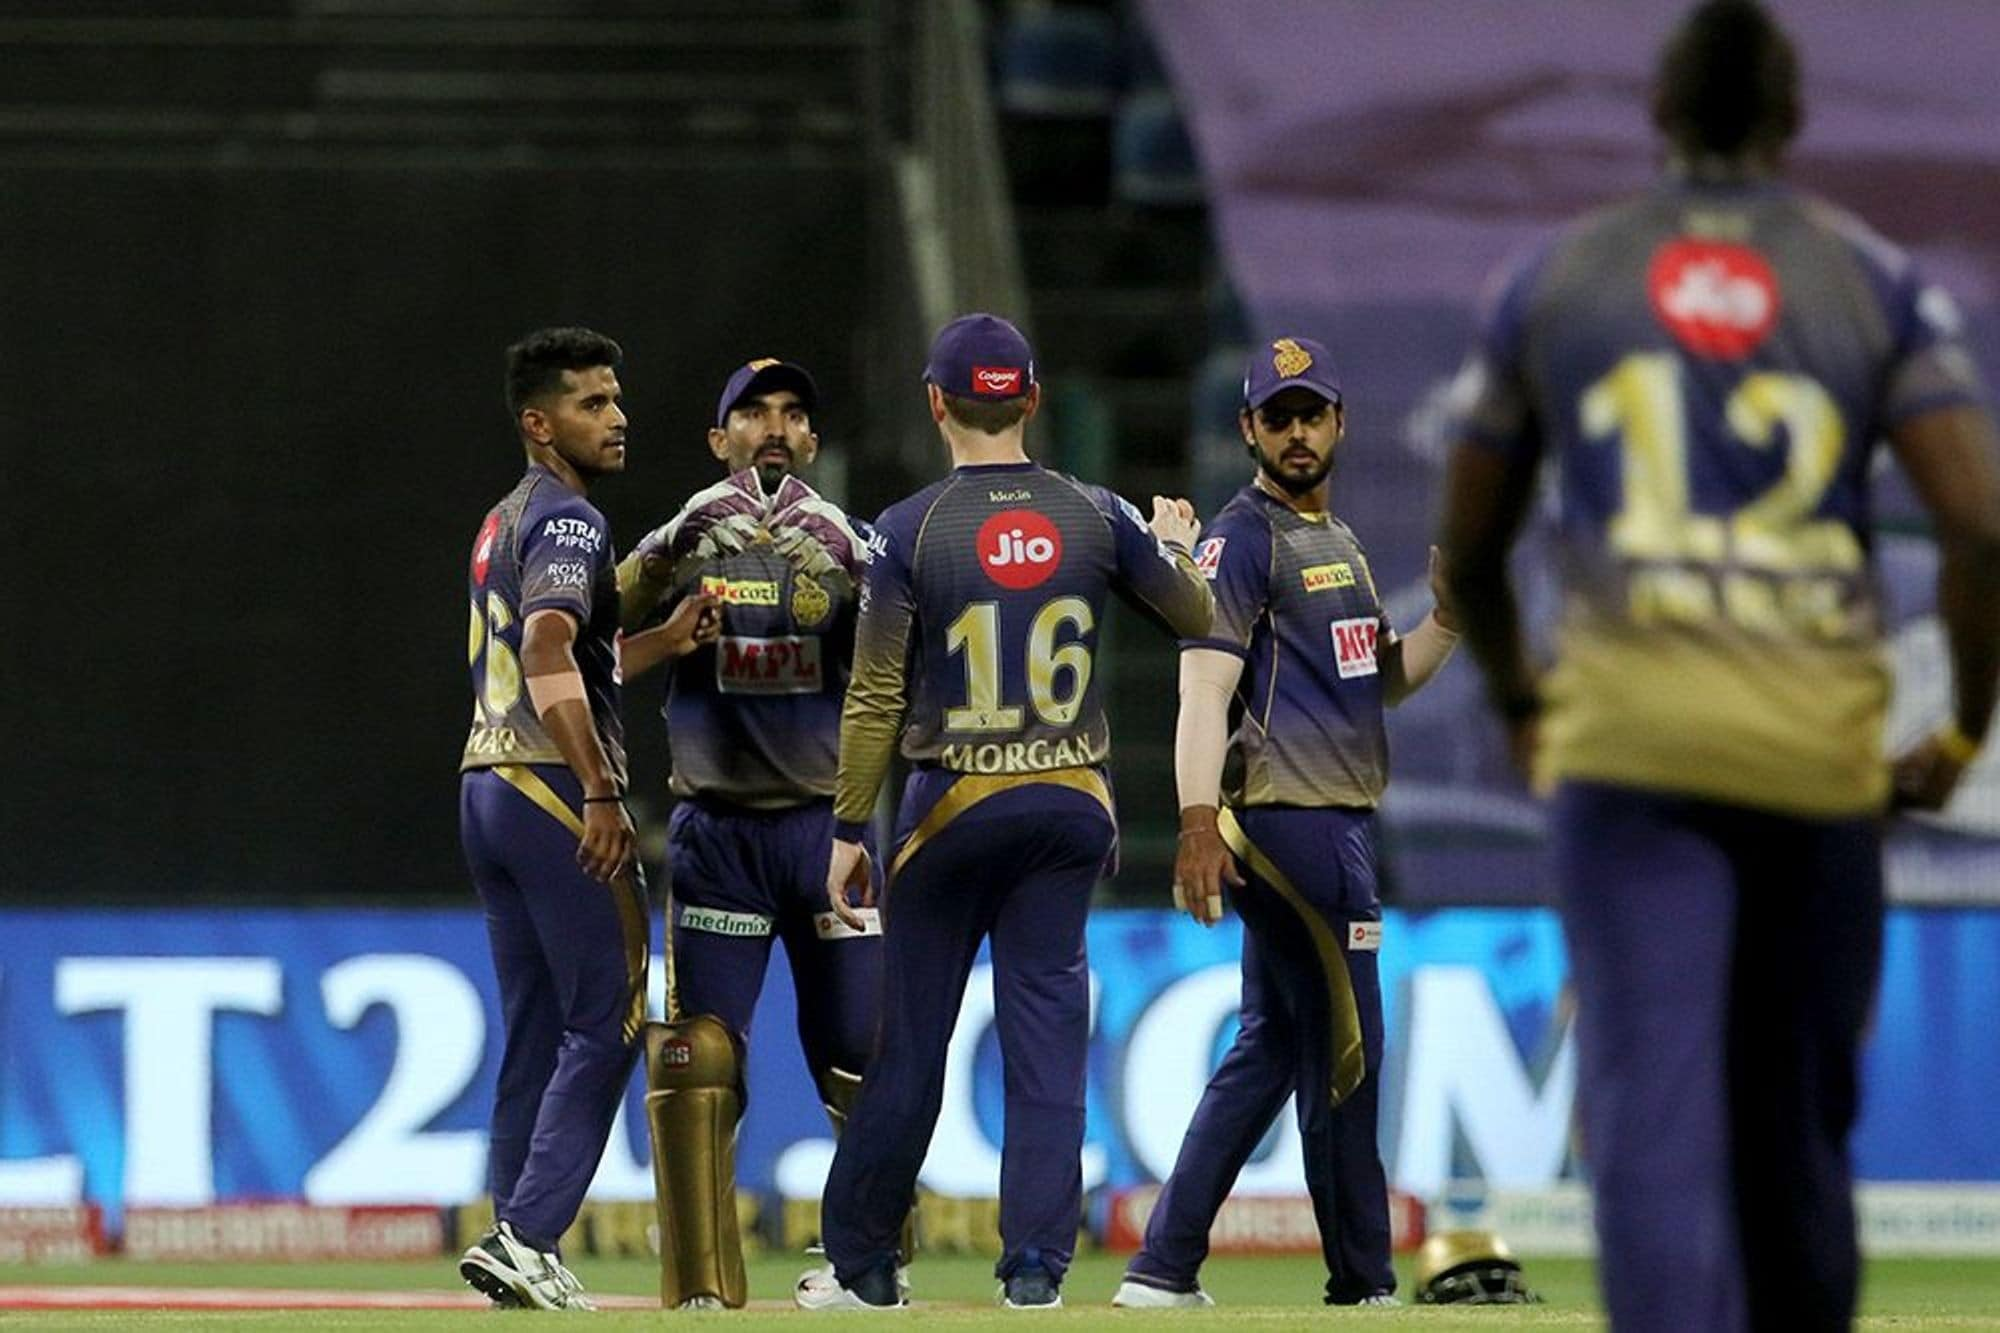 IPL 2020: Kolkata Knight Riders Currently Looking Like a Bits-and-pieces Side, Says Virender Sehwag